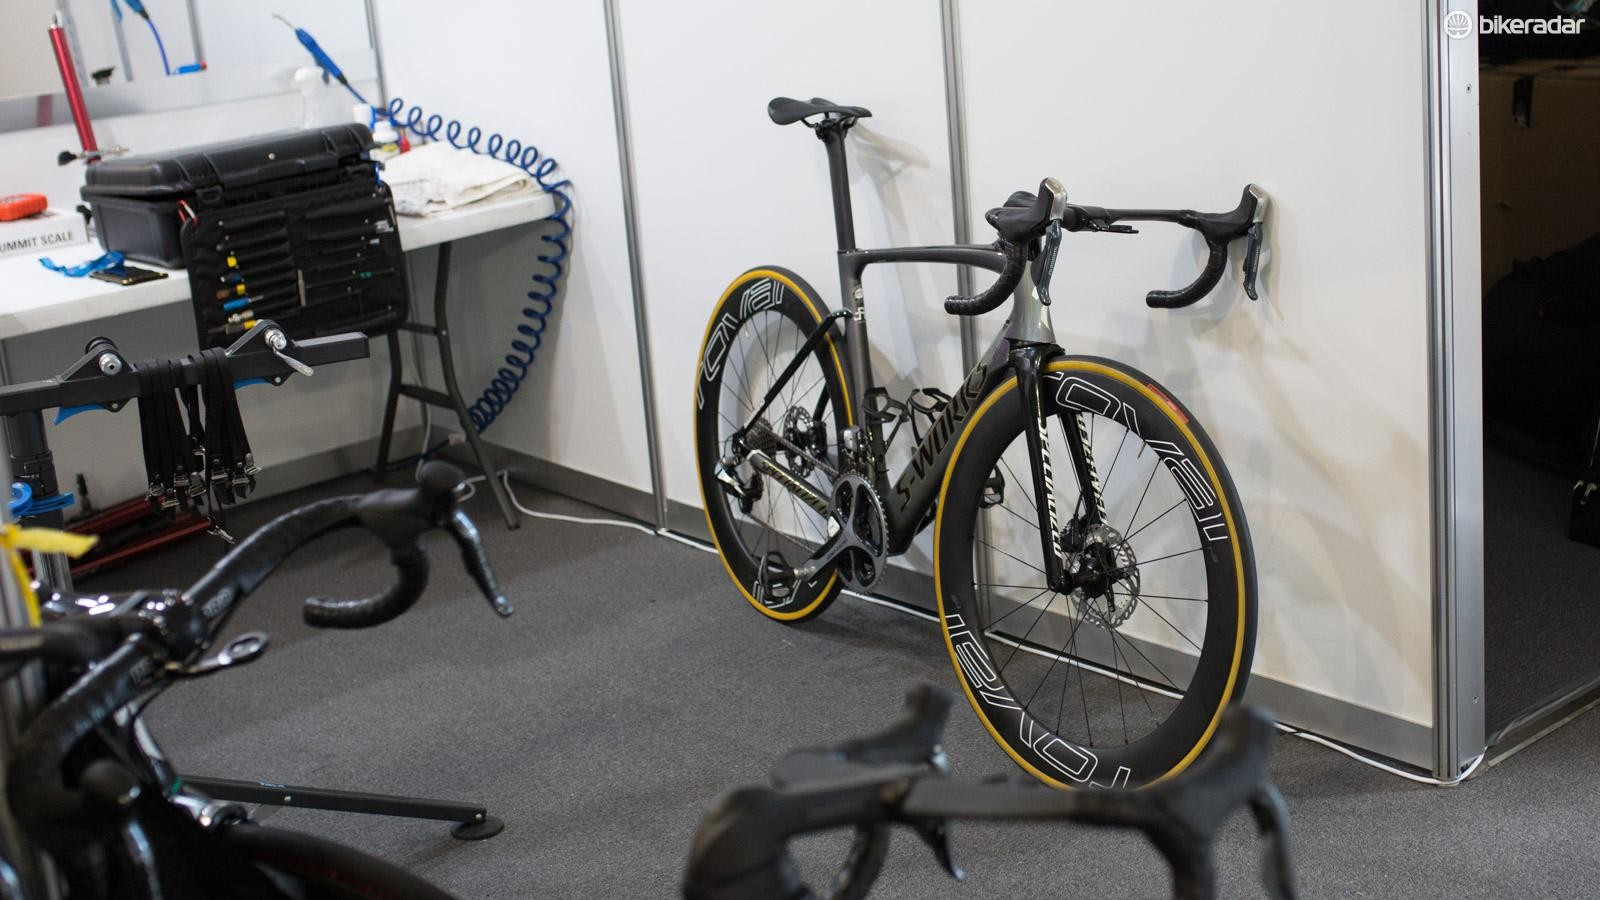 The disc brake Specialized Peter Sagan has been testing in Australia